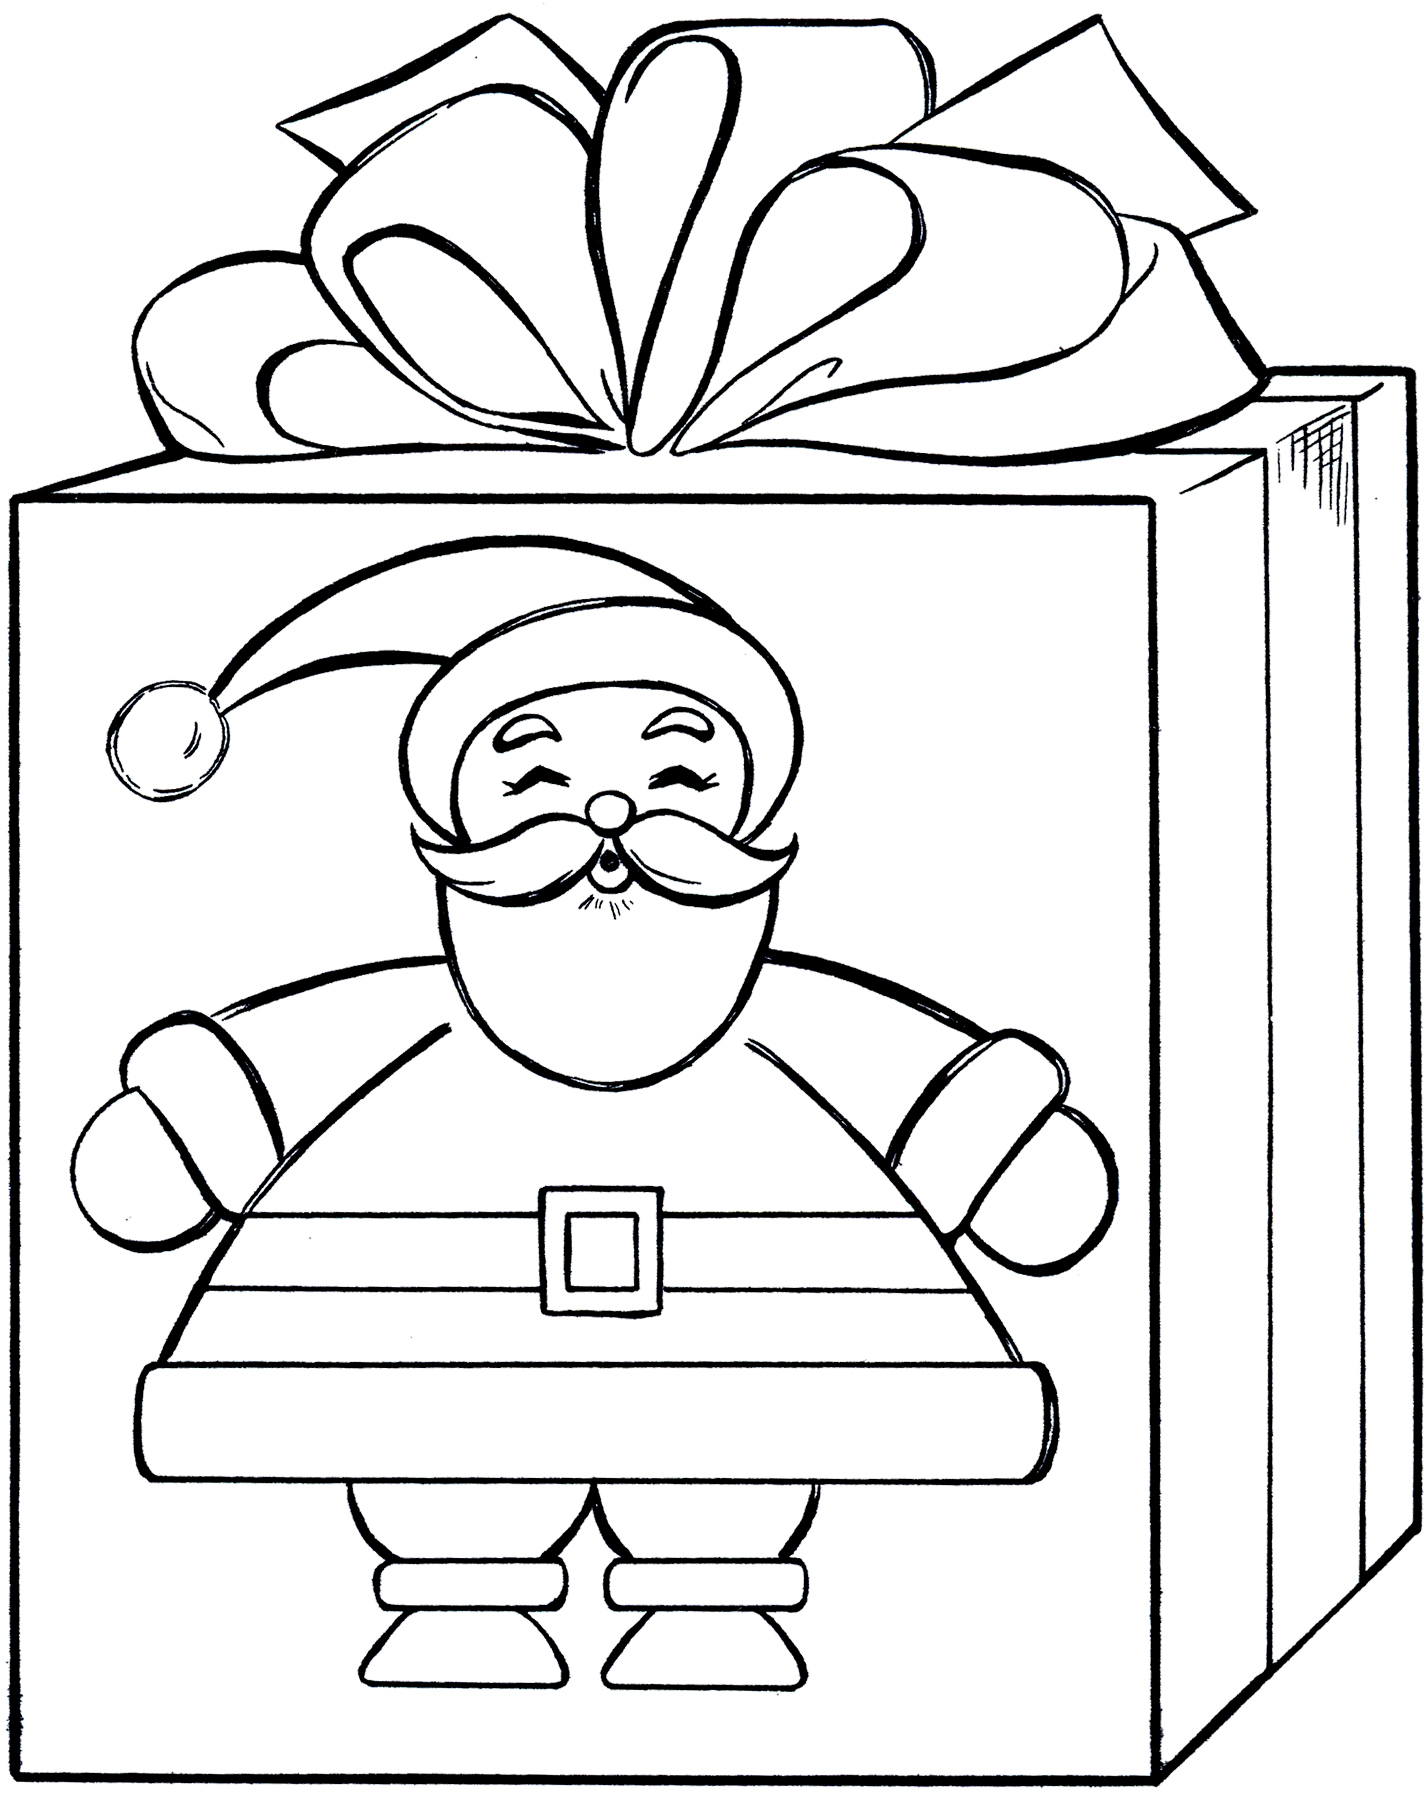 Santa Gift Coloring Page - Cute! - The Graphics Fairy